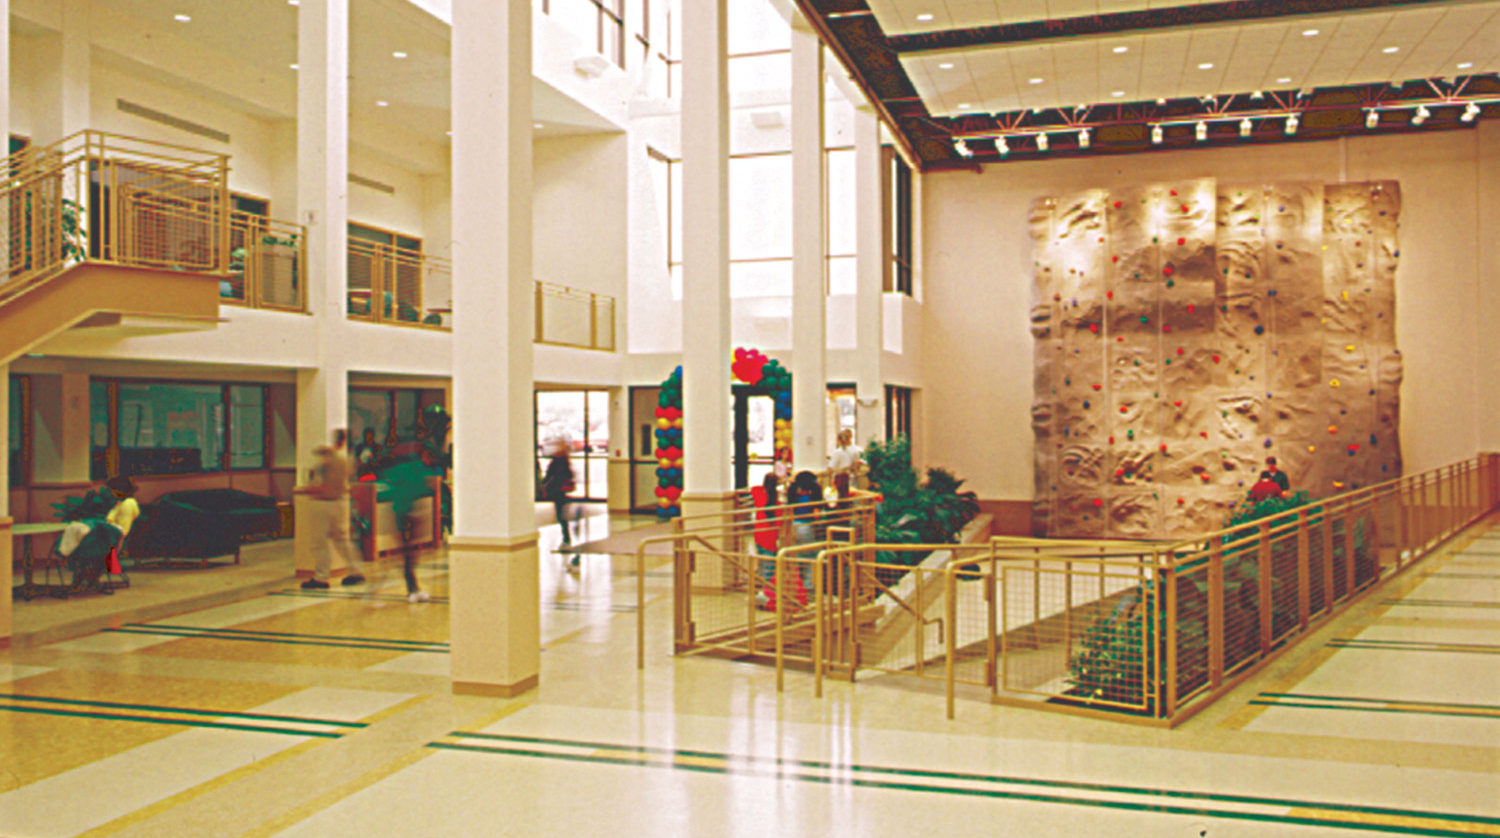 Bolingbrook Park District Annerino Center interior